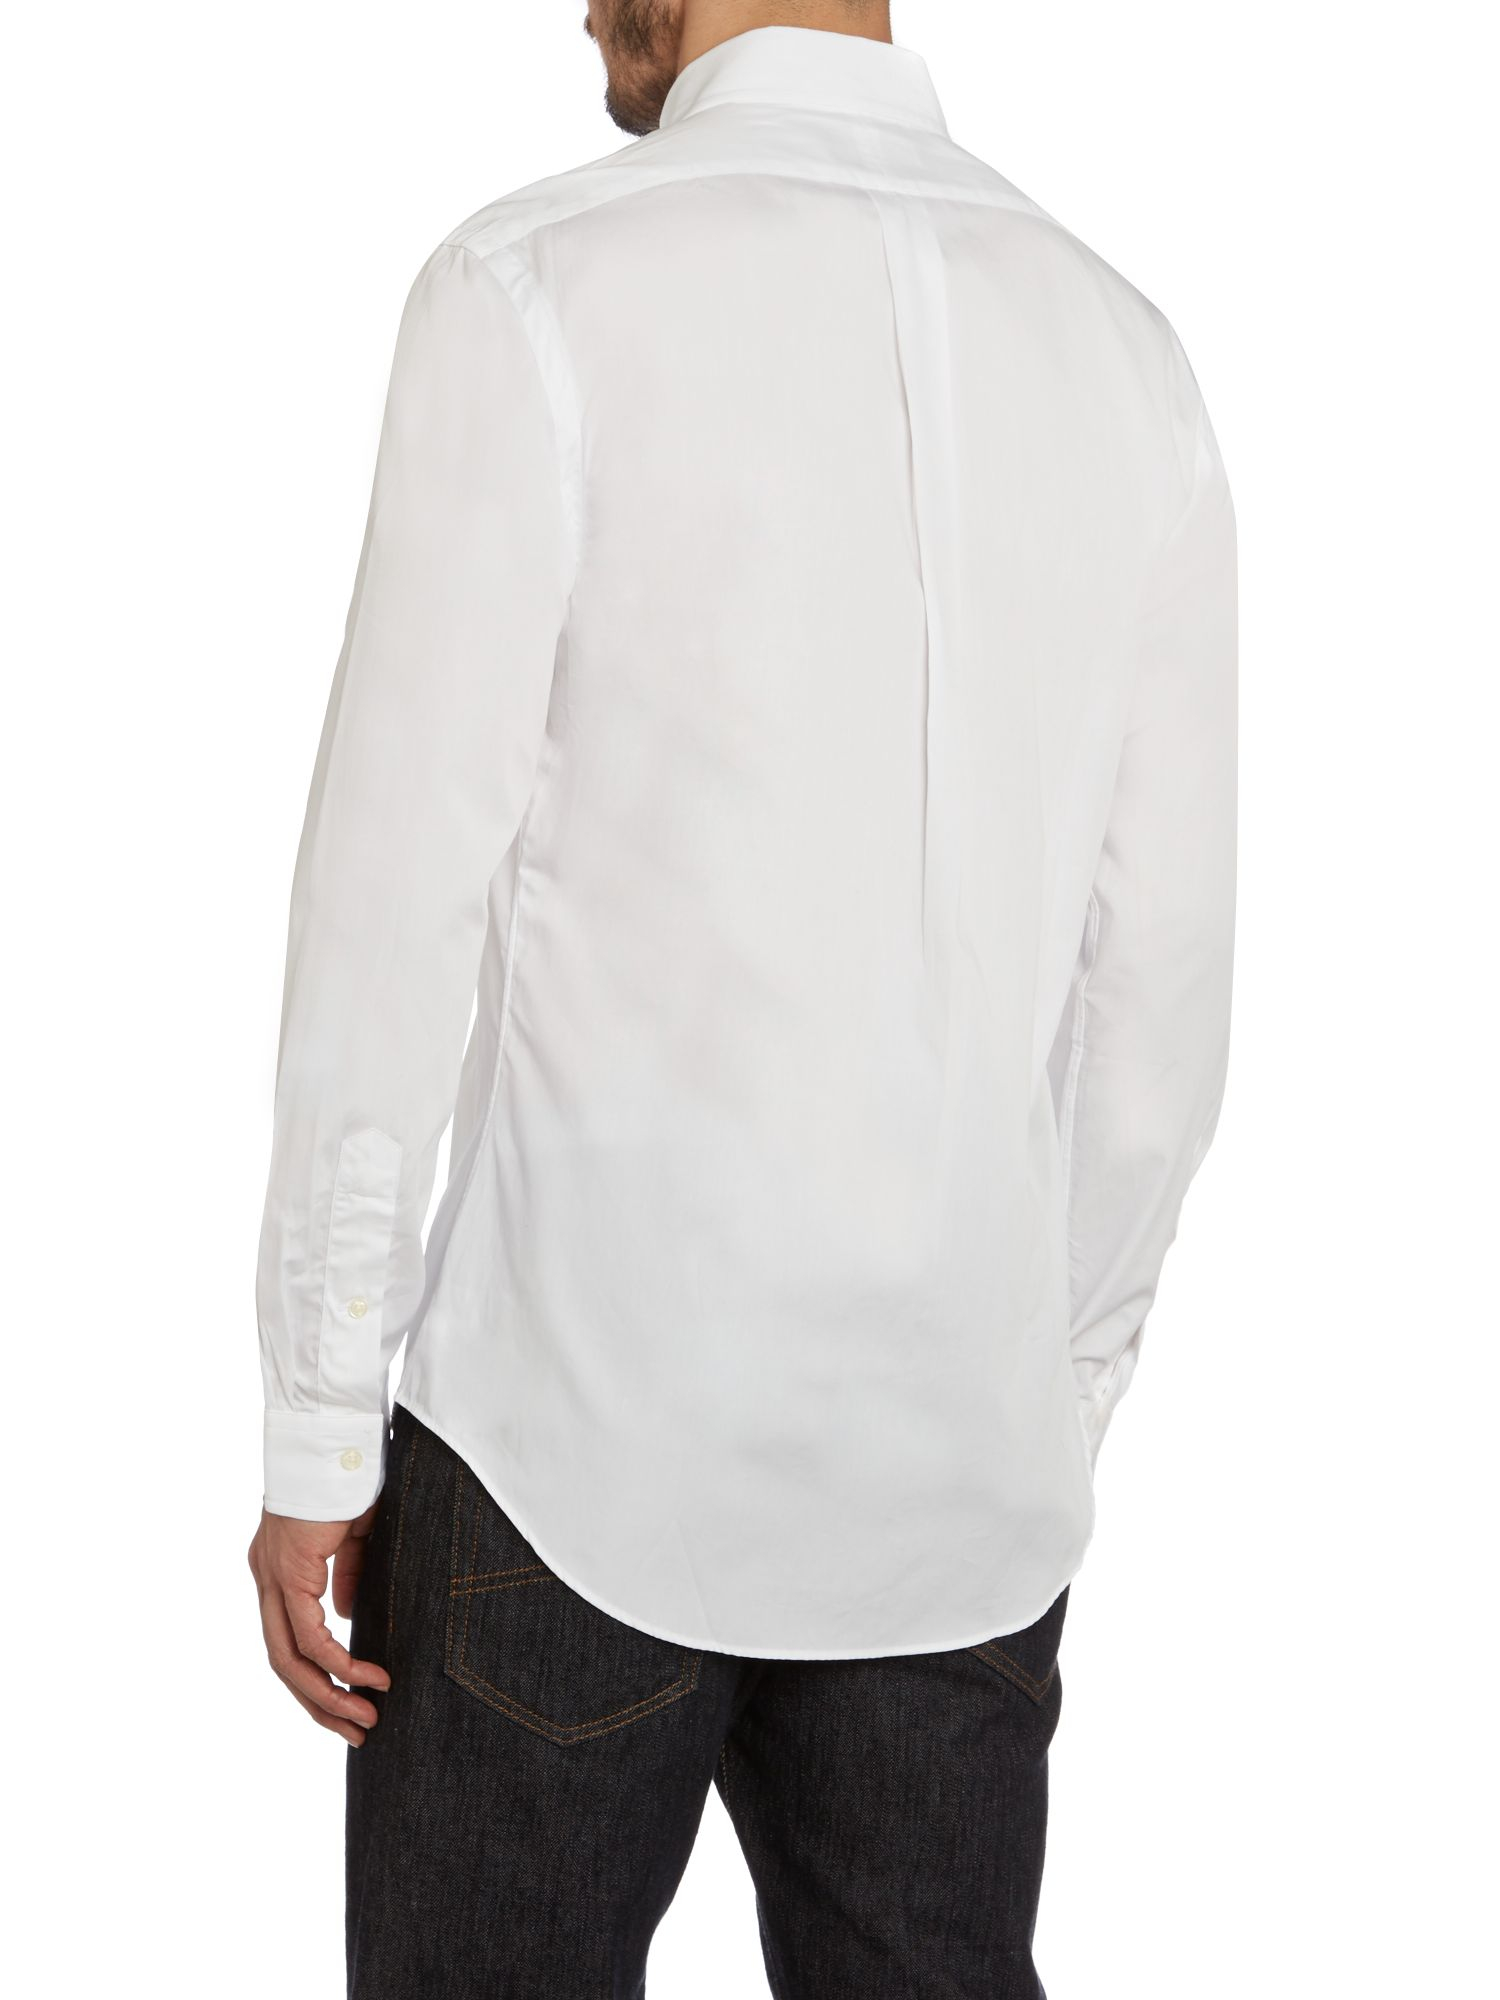 polo ralph lauren slim fit long sleeve shirt in white for men lyst. Black Bedroom Furniture Sets. Home Design Ideas